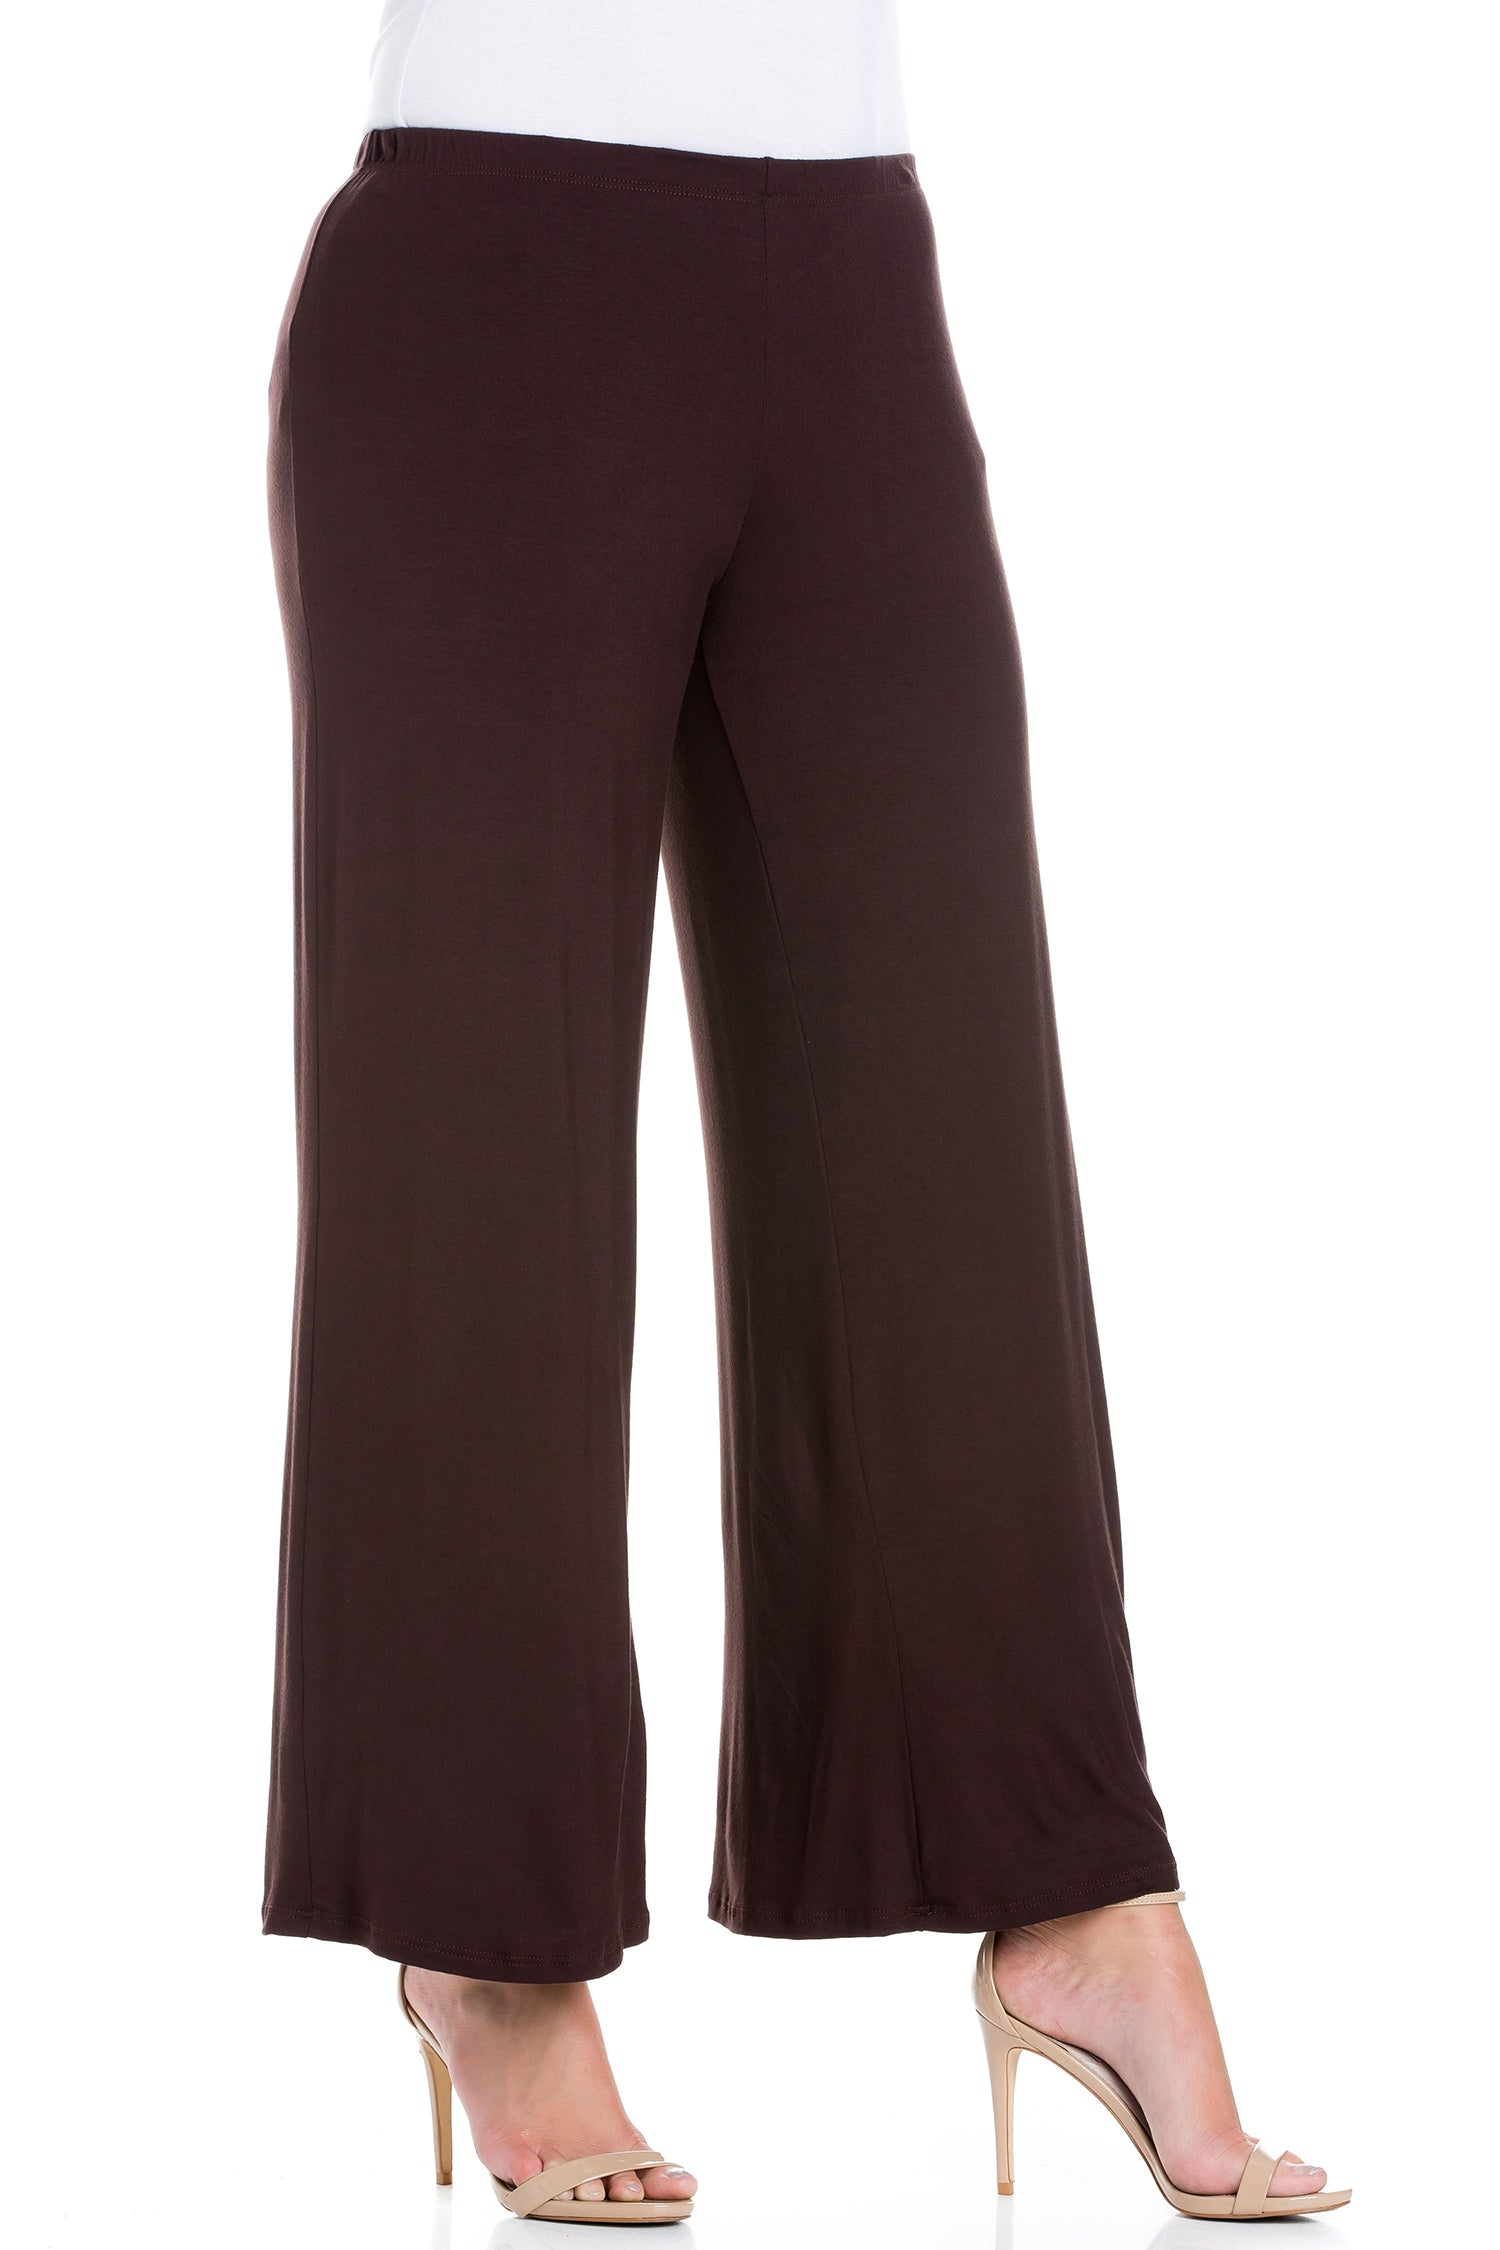 24seven Comfort Apparel Elastic Waist Flared Leg Plus Size Palazzo Pants-PANT-24Seven Comfort Apparel-BROWN-1X-24/7 Comfort Apparel